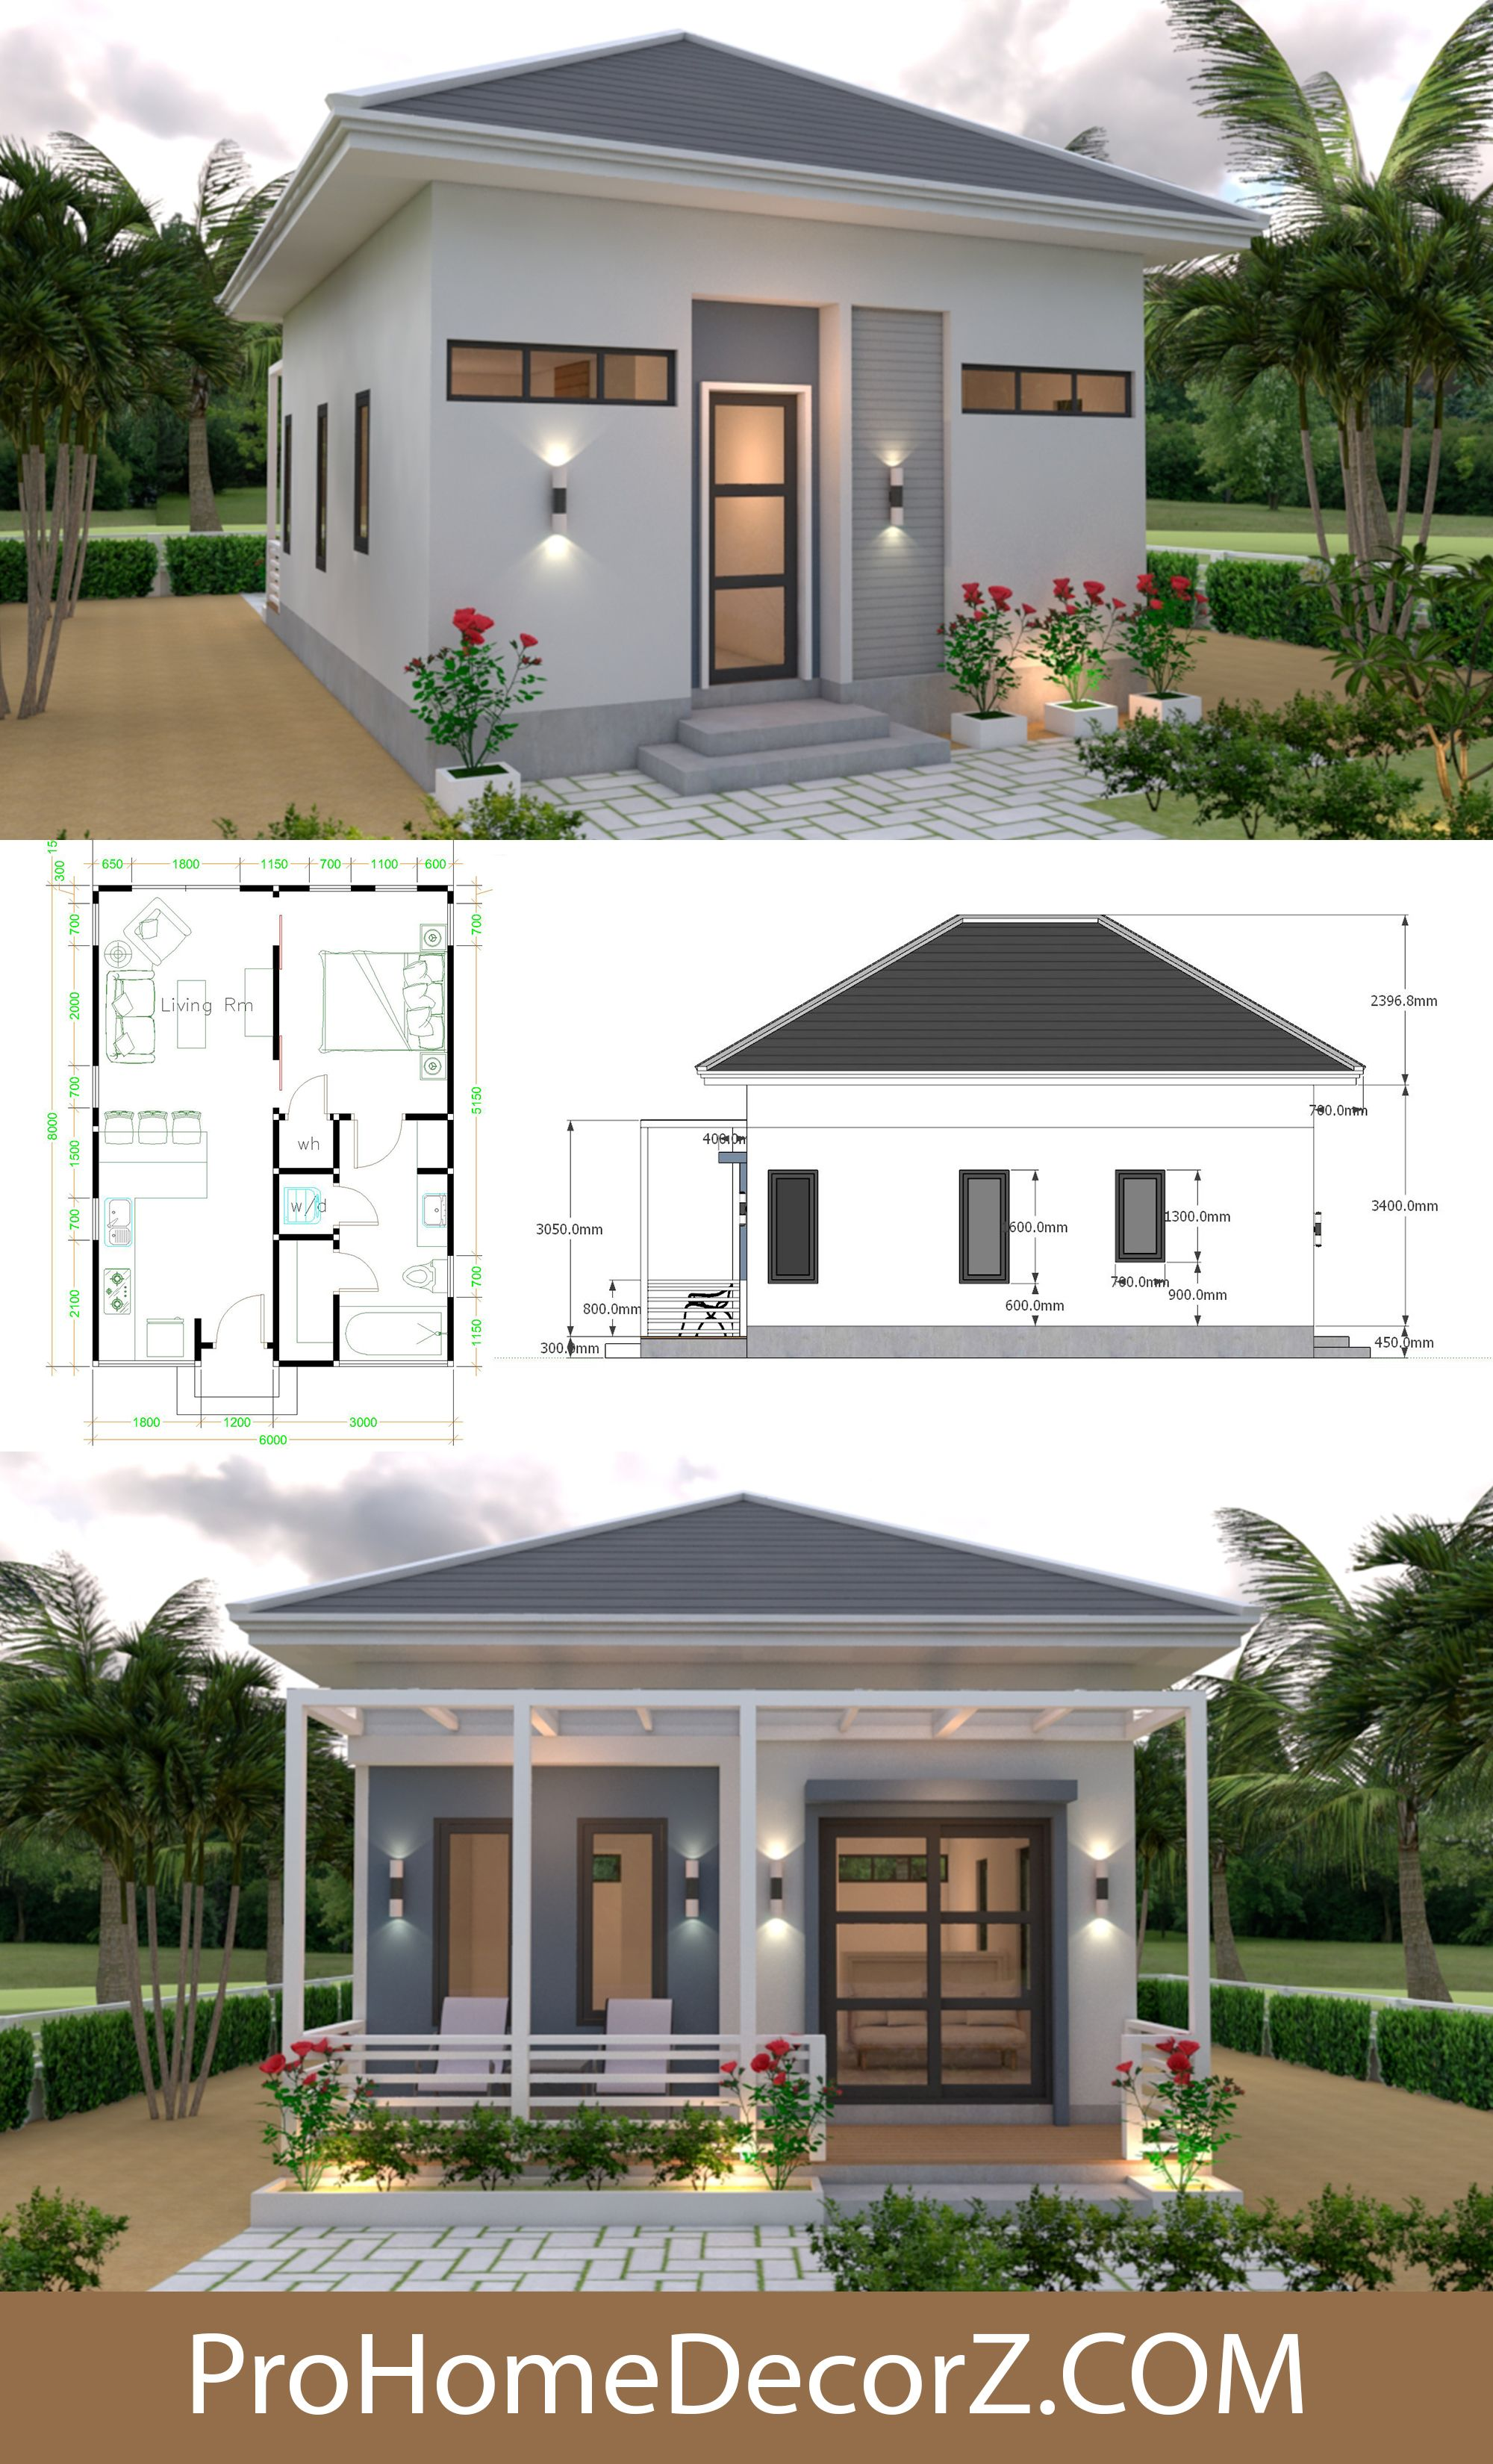 Small Homes 6x8 Hip Roof Full Plans 48sq M Small House Design House Design Small House